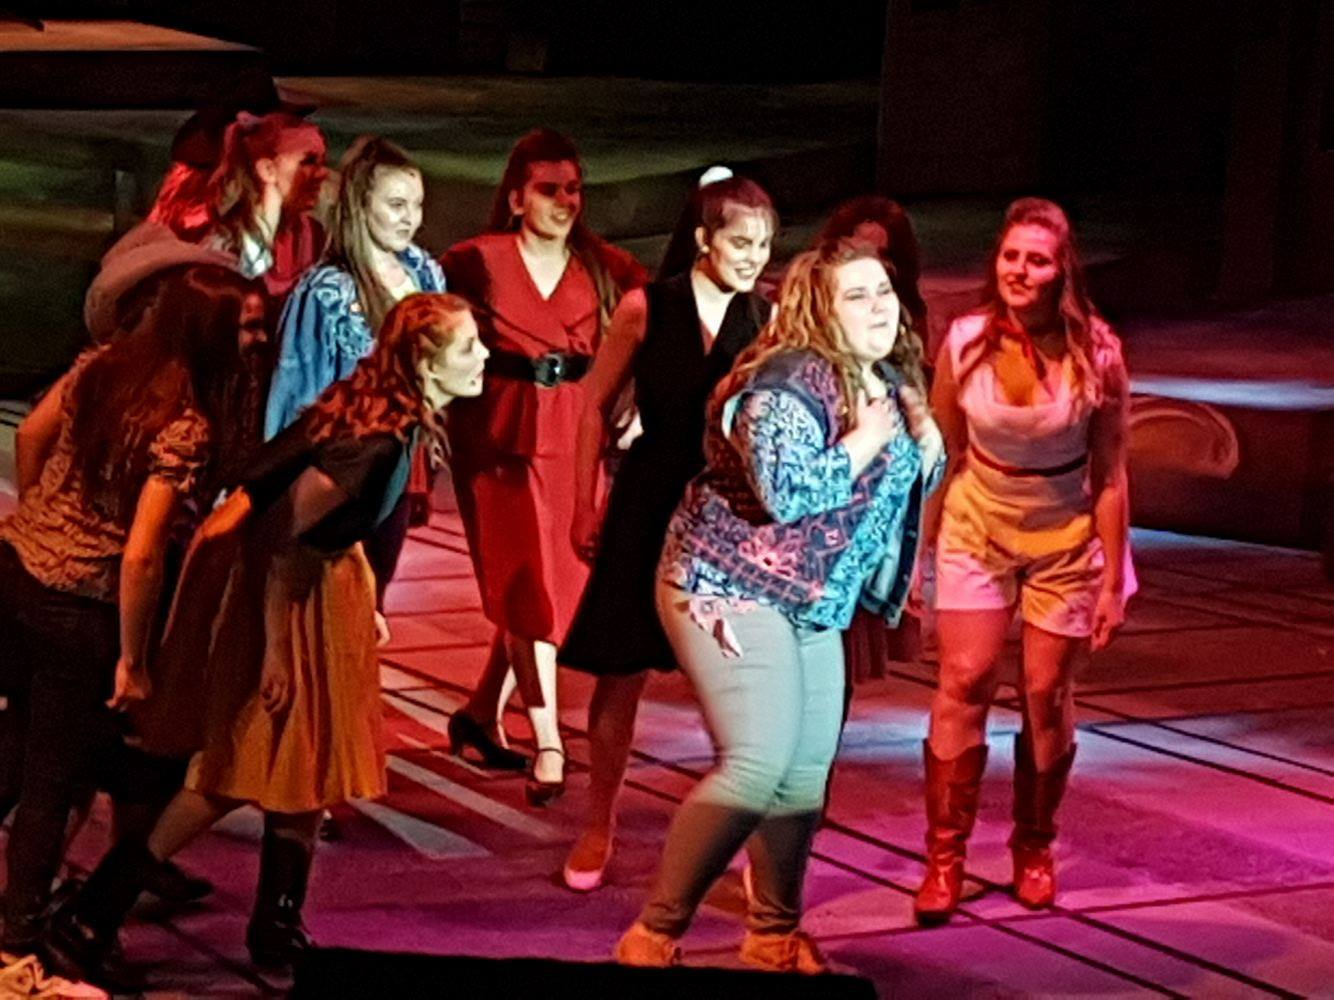 Avery Rex (Rusty) during her feature tune in Footloose: The Musical at Keyano Theatre